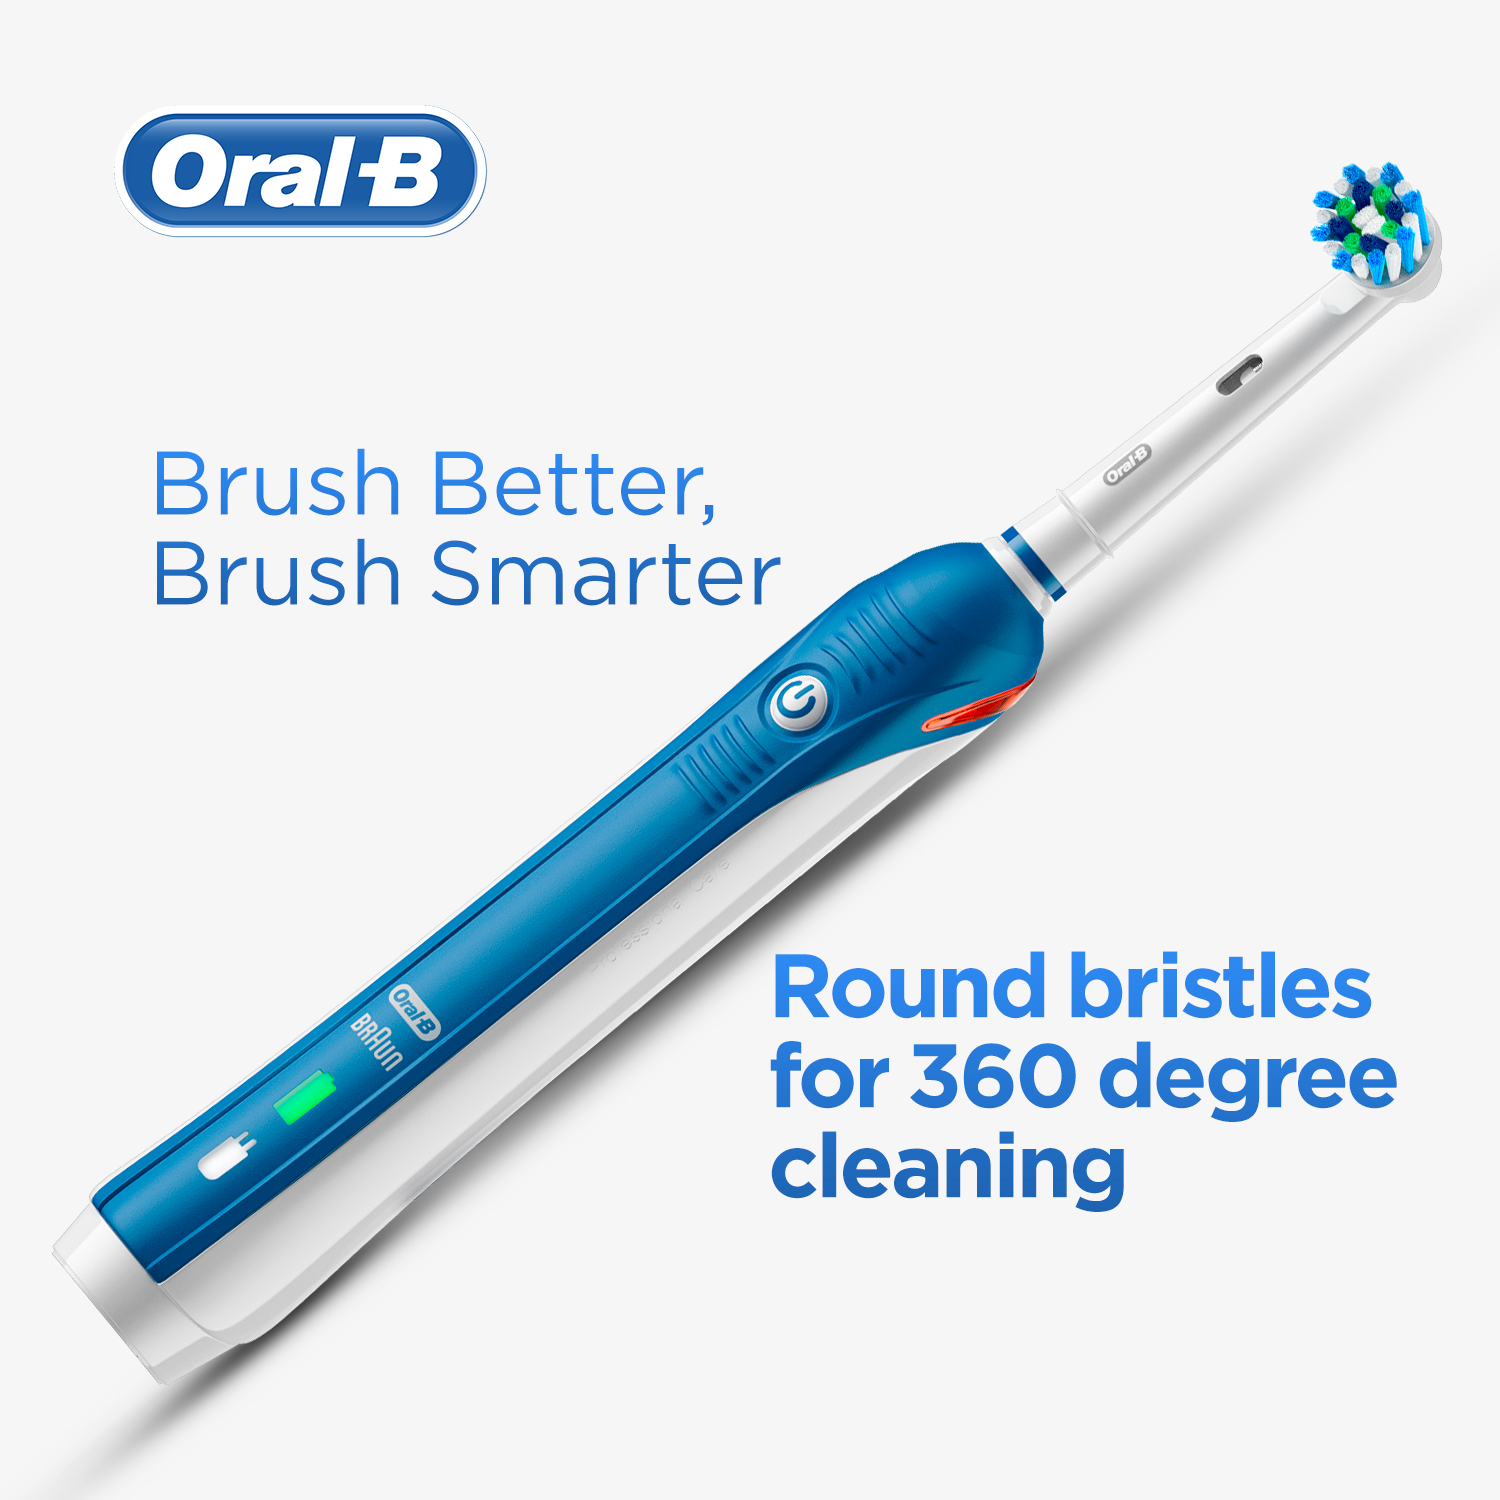 Pro 2 Electric Toothbrush with Cross Action Bristles_Rechargeable